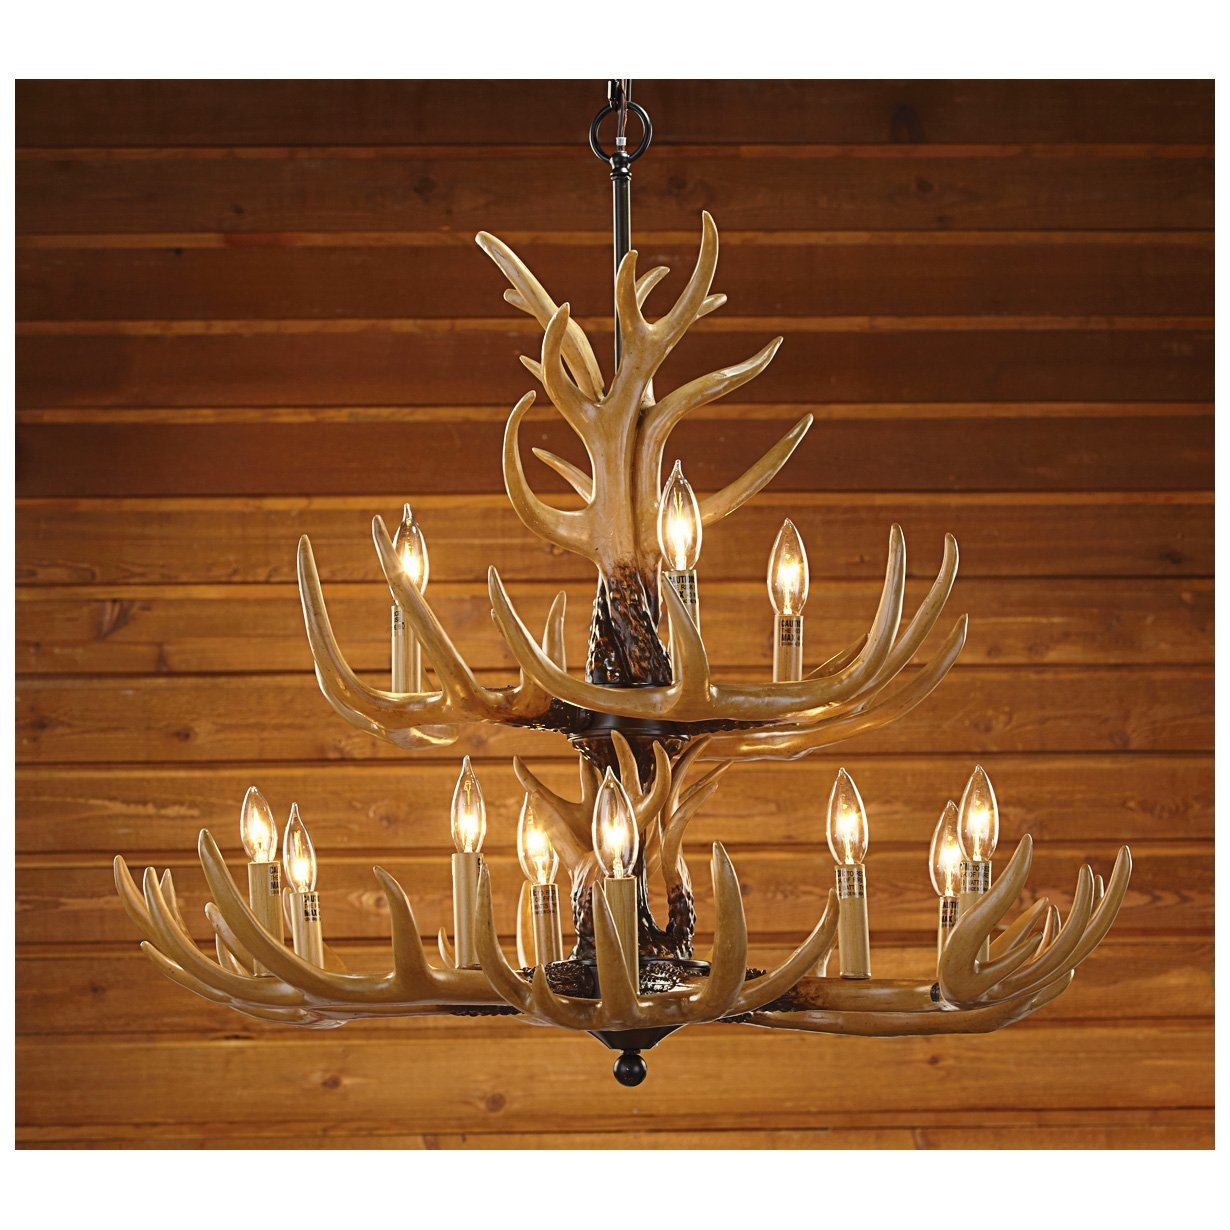 Lodge style chandeliers chandelier ideas rustic lodge log cabin themed bedding sets aloadofball Images